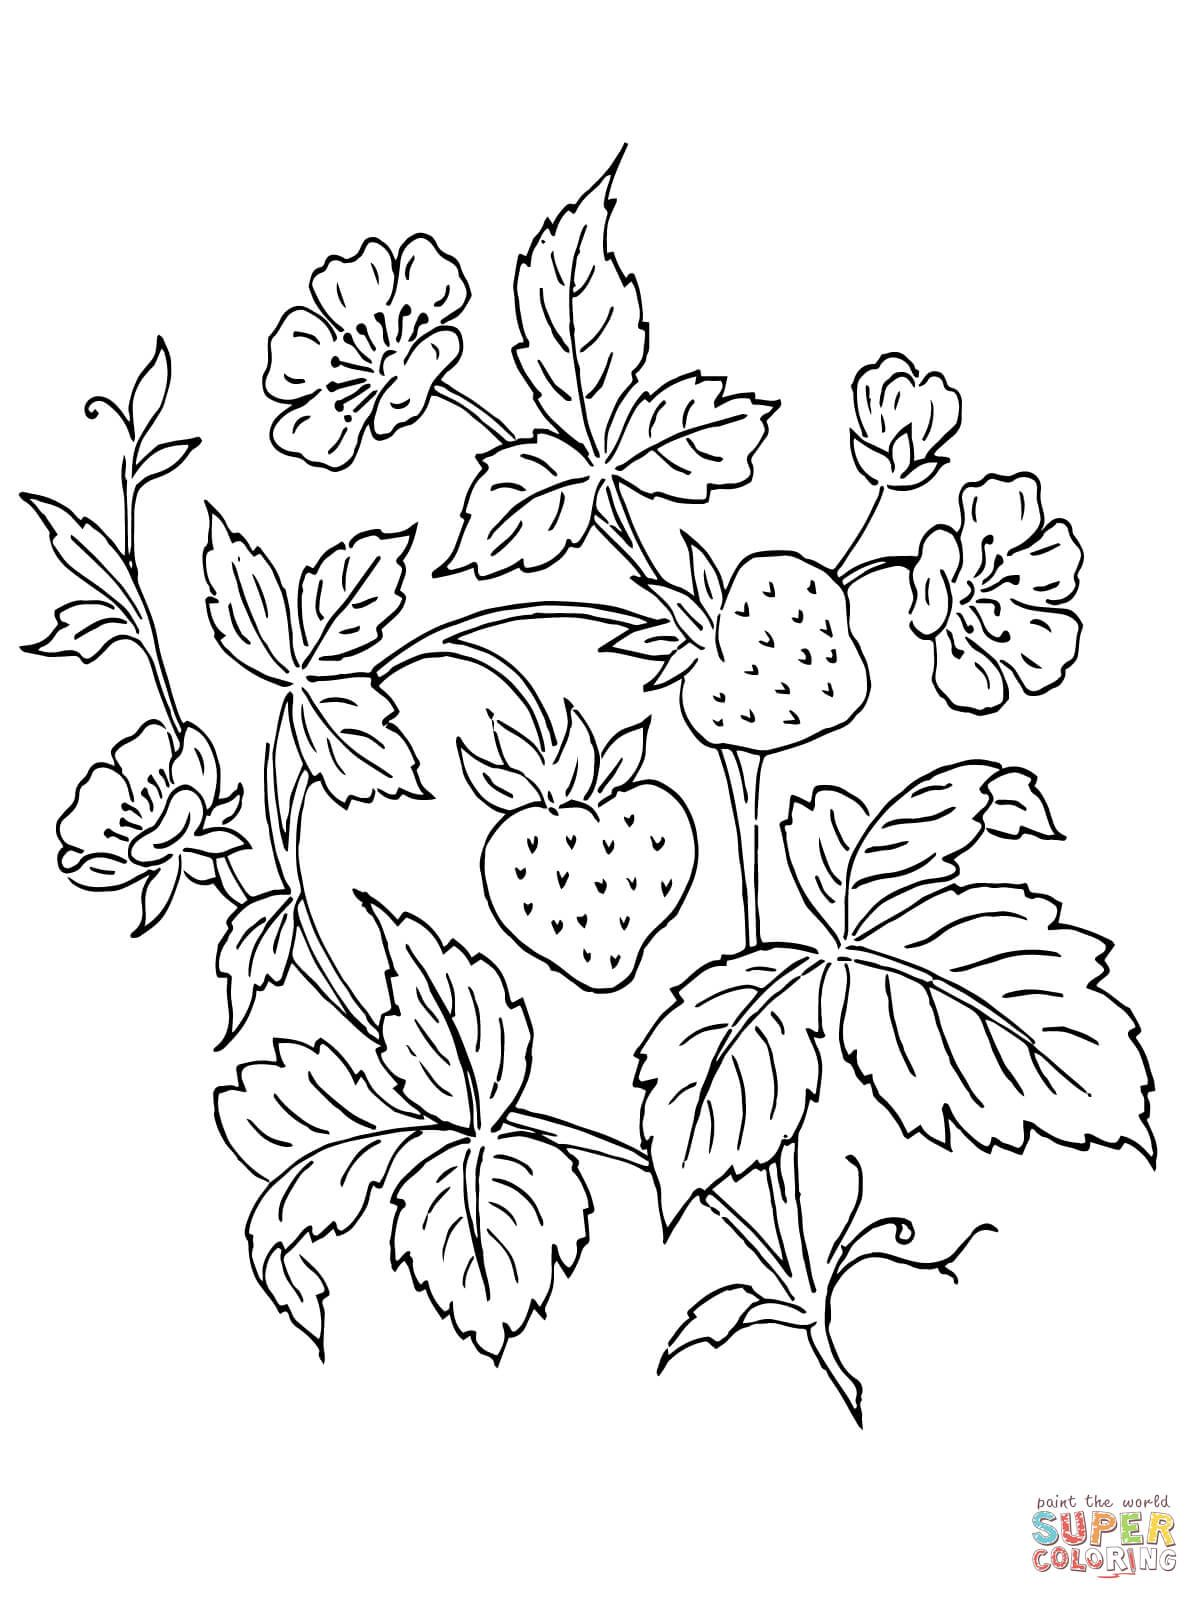 Strawberry Bush Super Coloring Free printable coloring